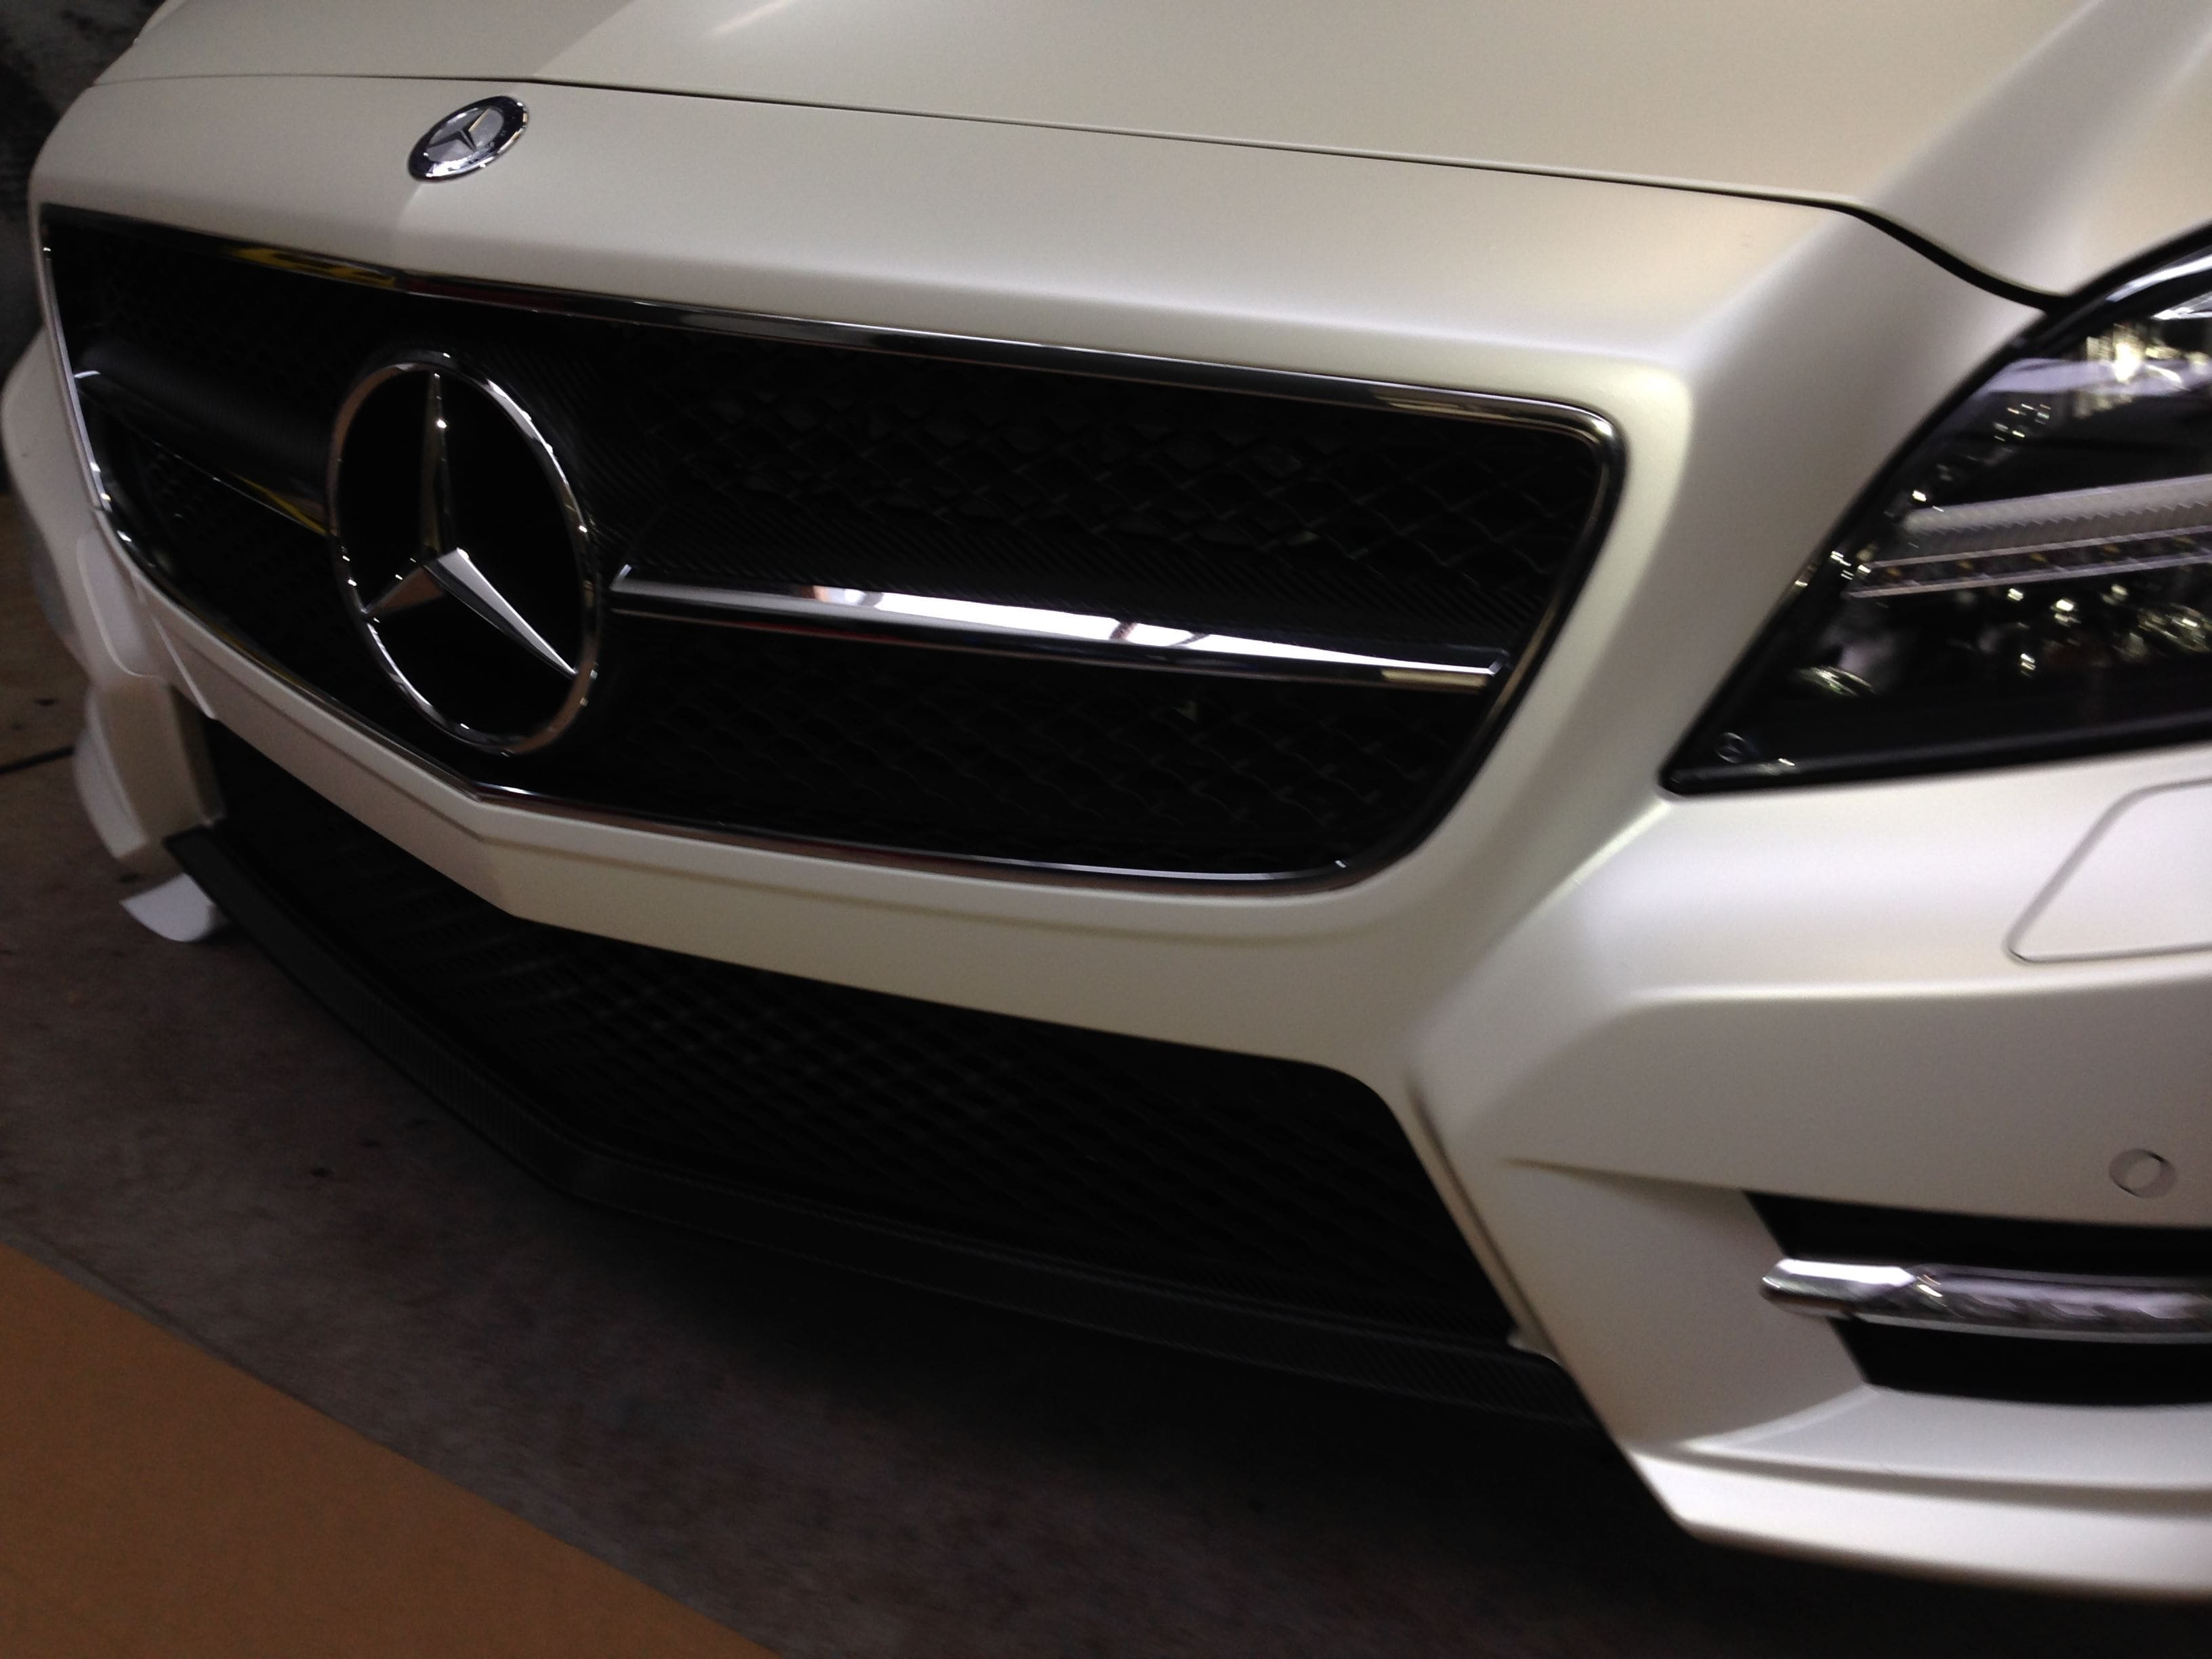 Mercedes CLS met White Satin Pearl Wrap, Carwrapping door Wrapmyride.nu Foto-nr:6199, ©2020